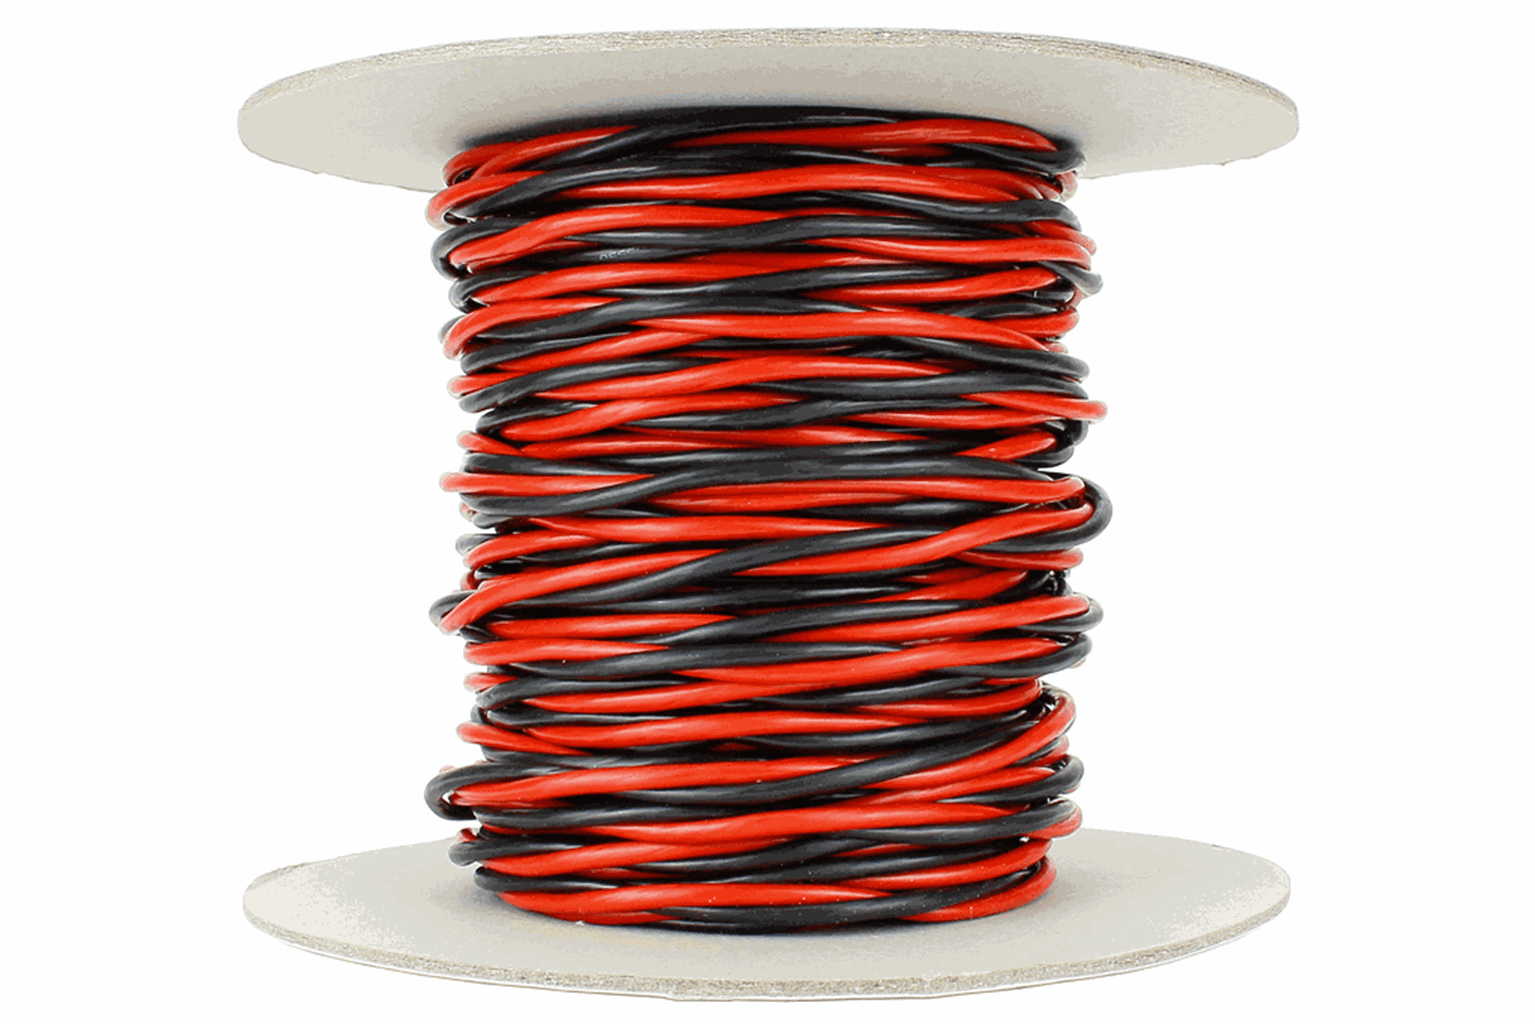 Twisted Bus Wire 25m of 3.5mm (11g) Twin Red/Black